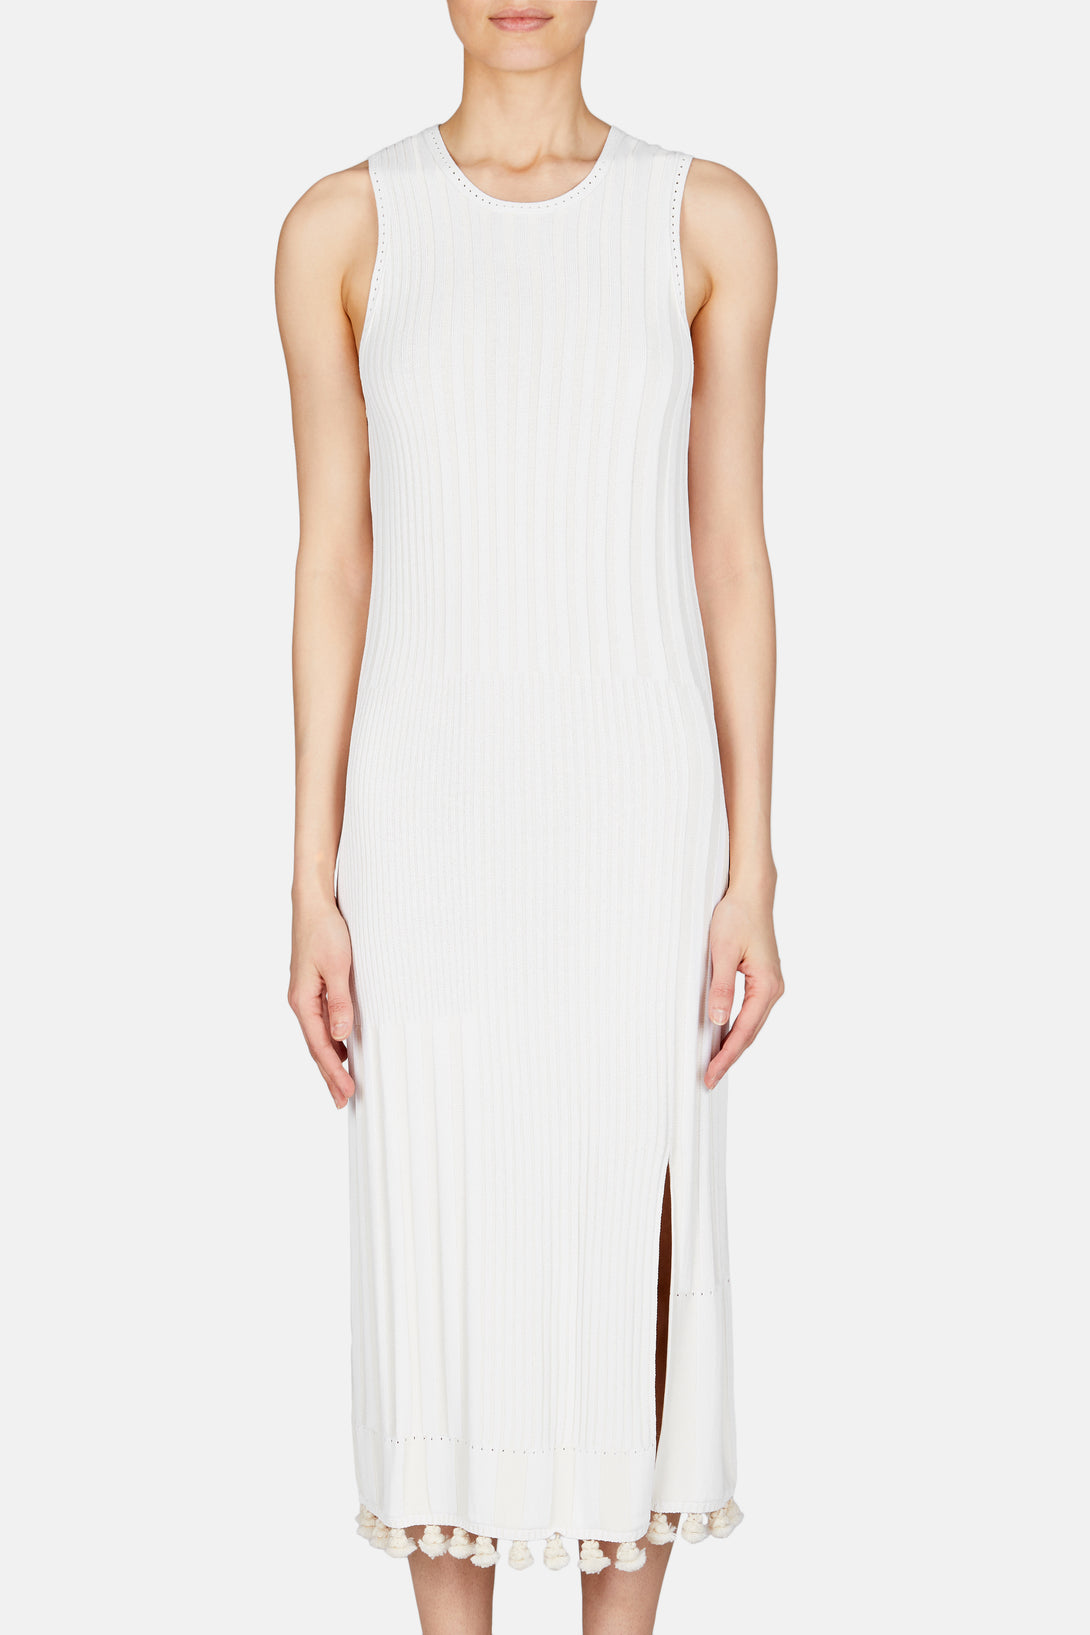 Lutetia Knit Tank Dress - Ivory